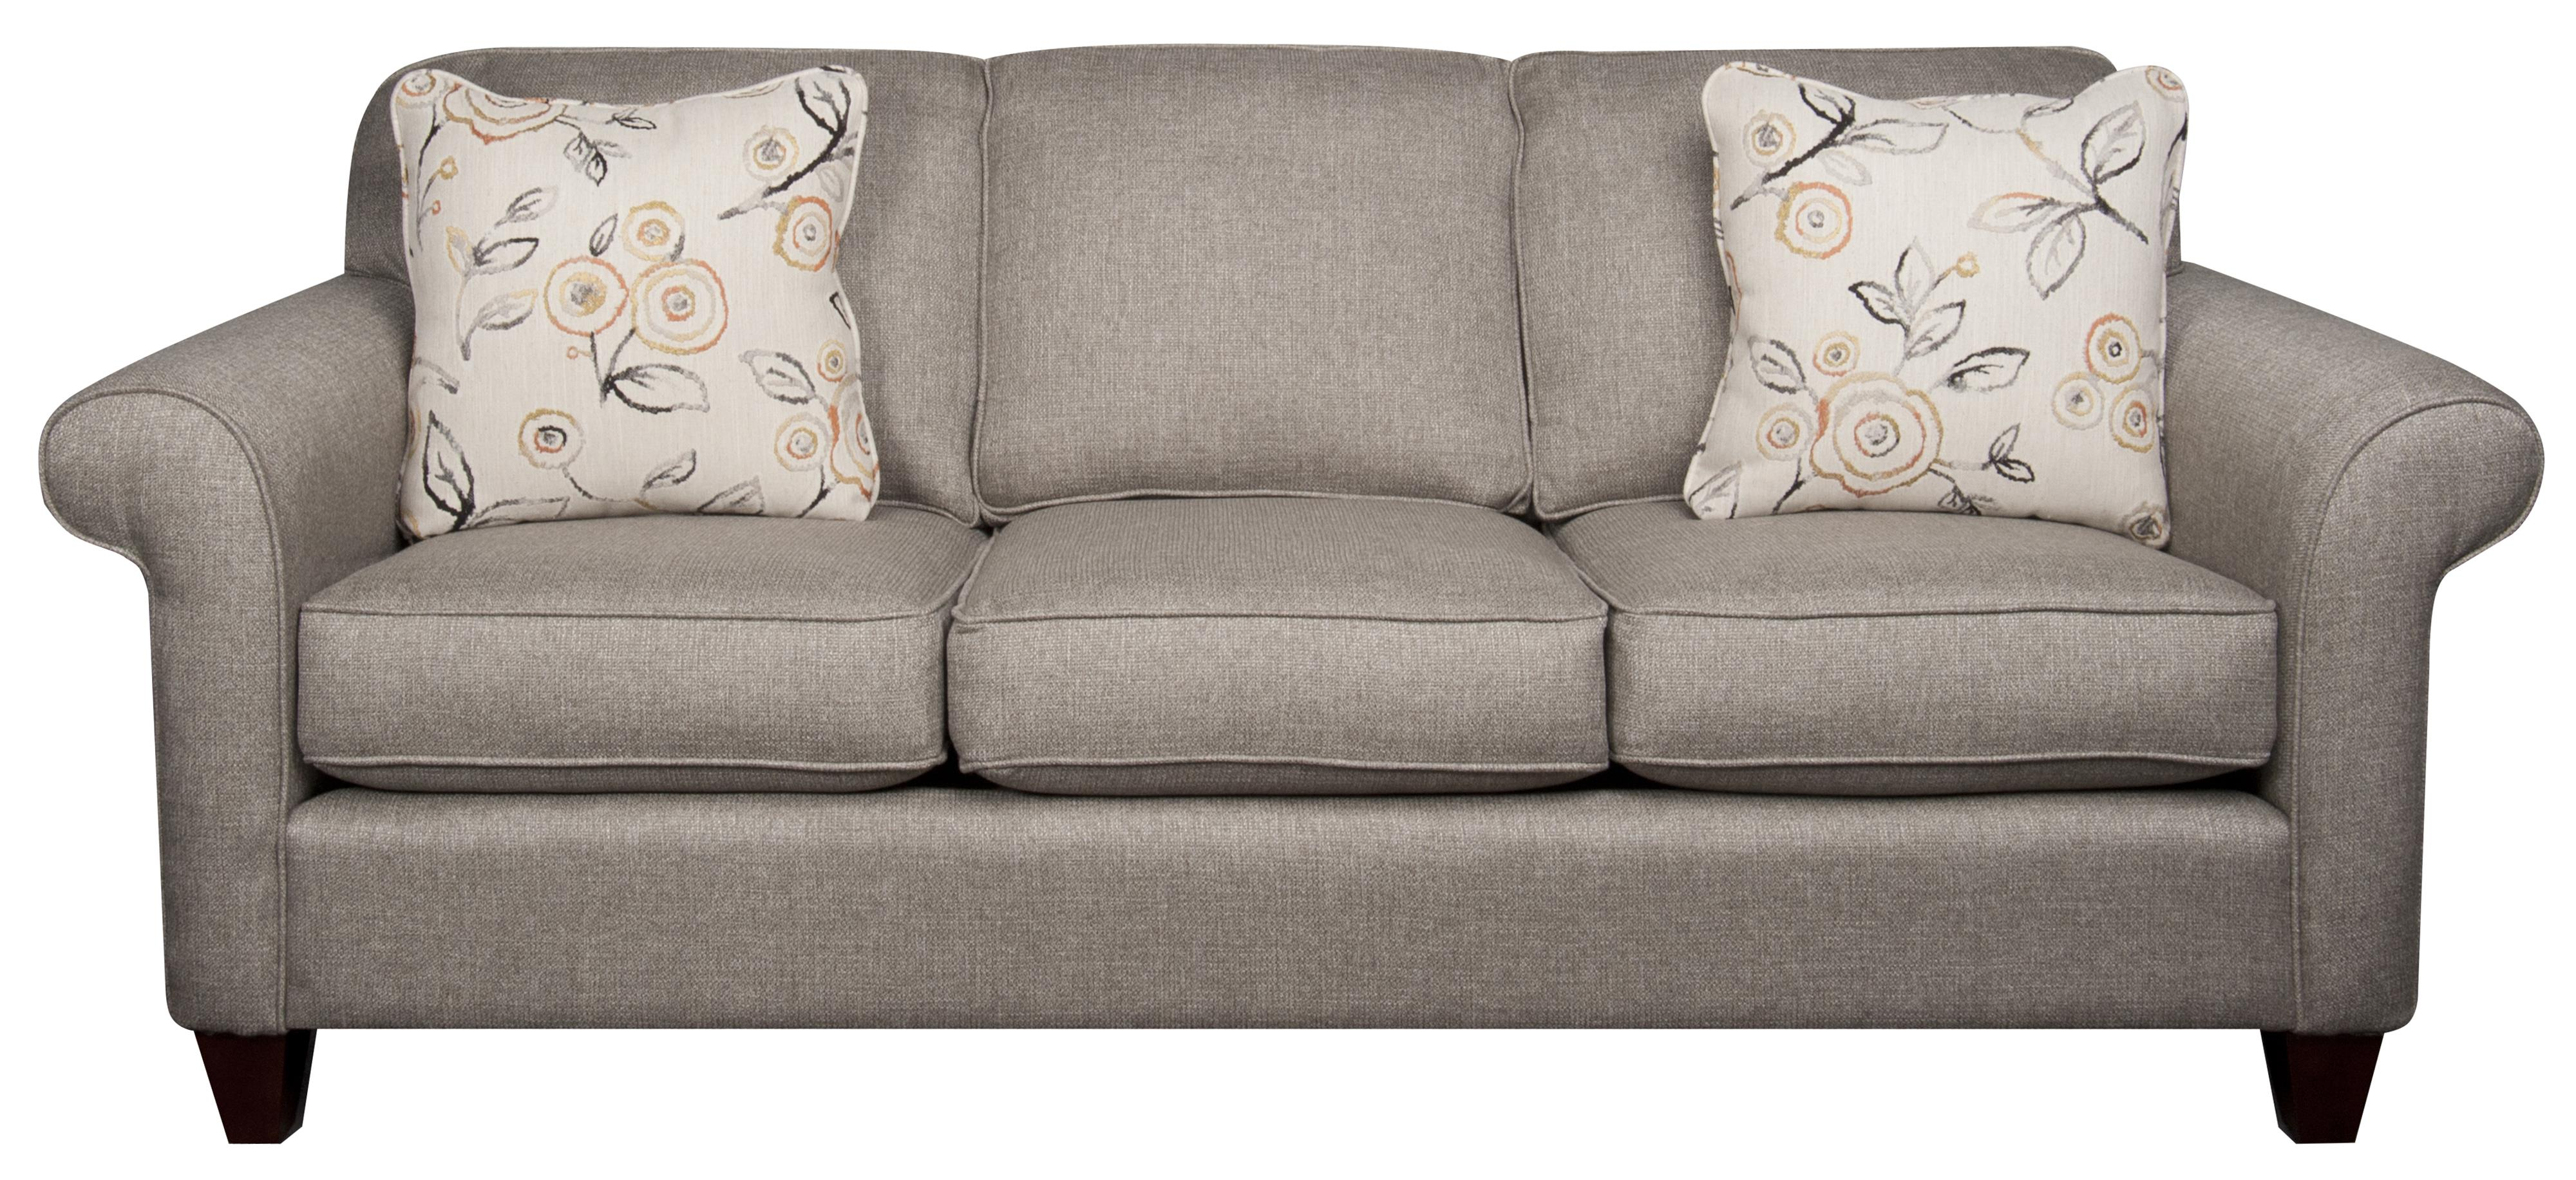 tuscany 3 seater leather sofa dry cleaning london fabric sofas and couches great living es 17 with ...